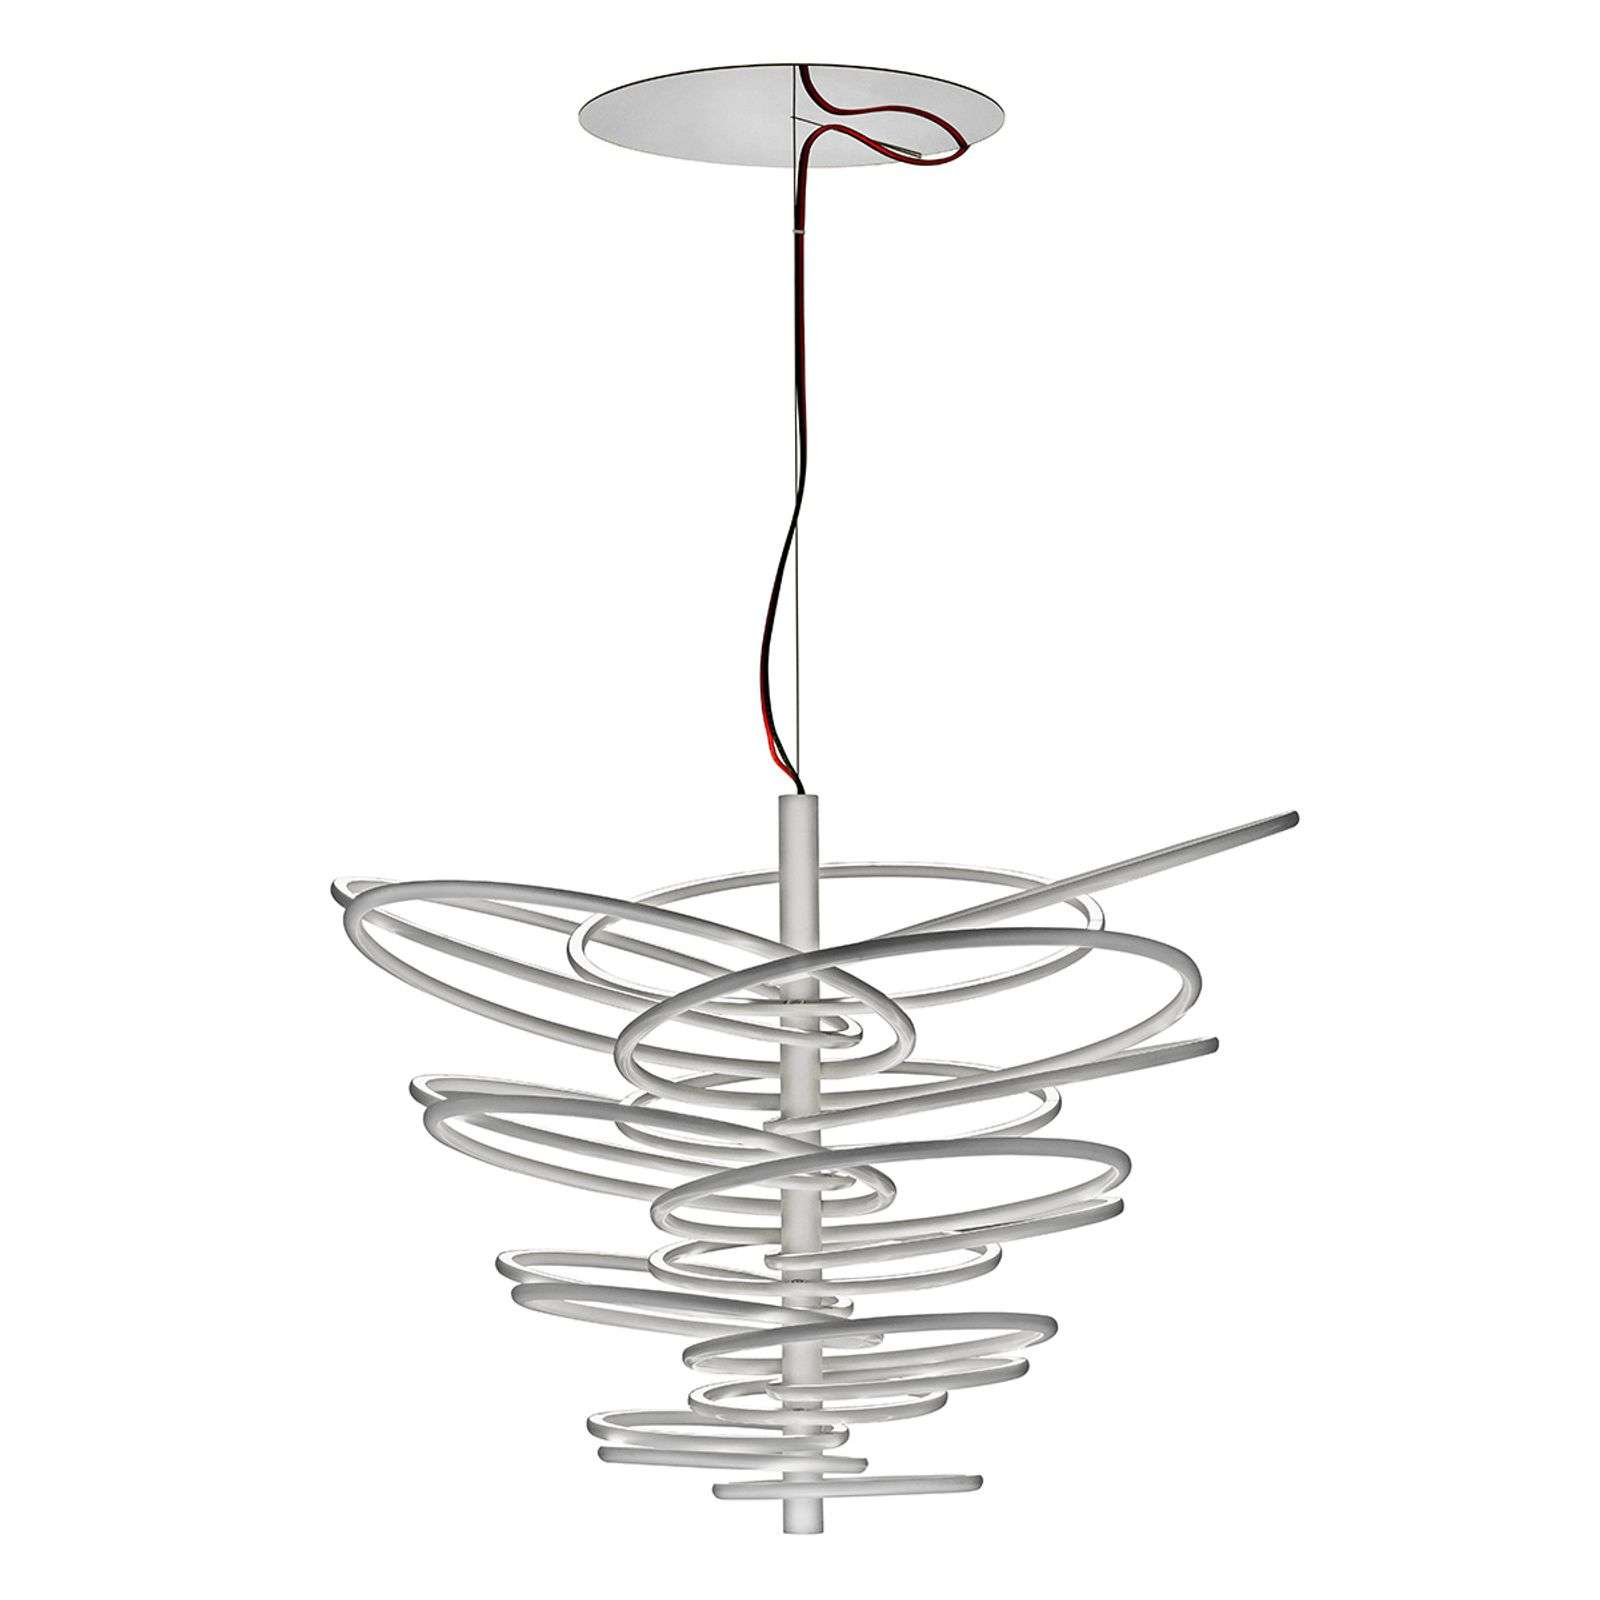 Belle suspension de designer 2620 avec LED